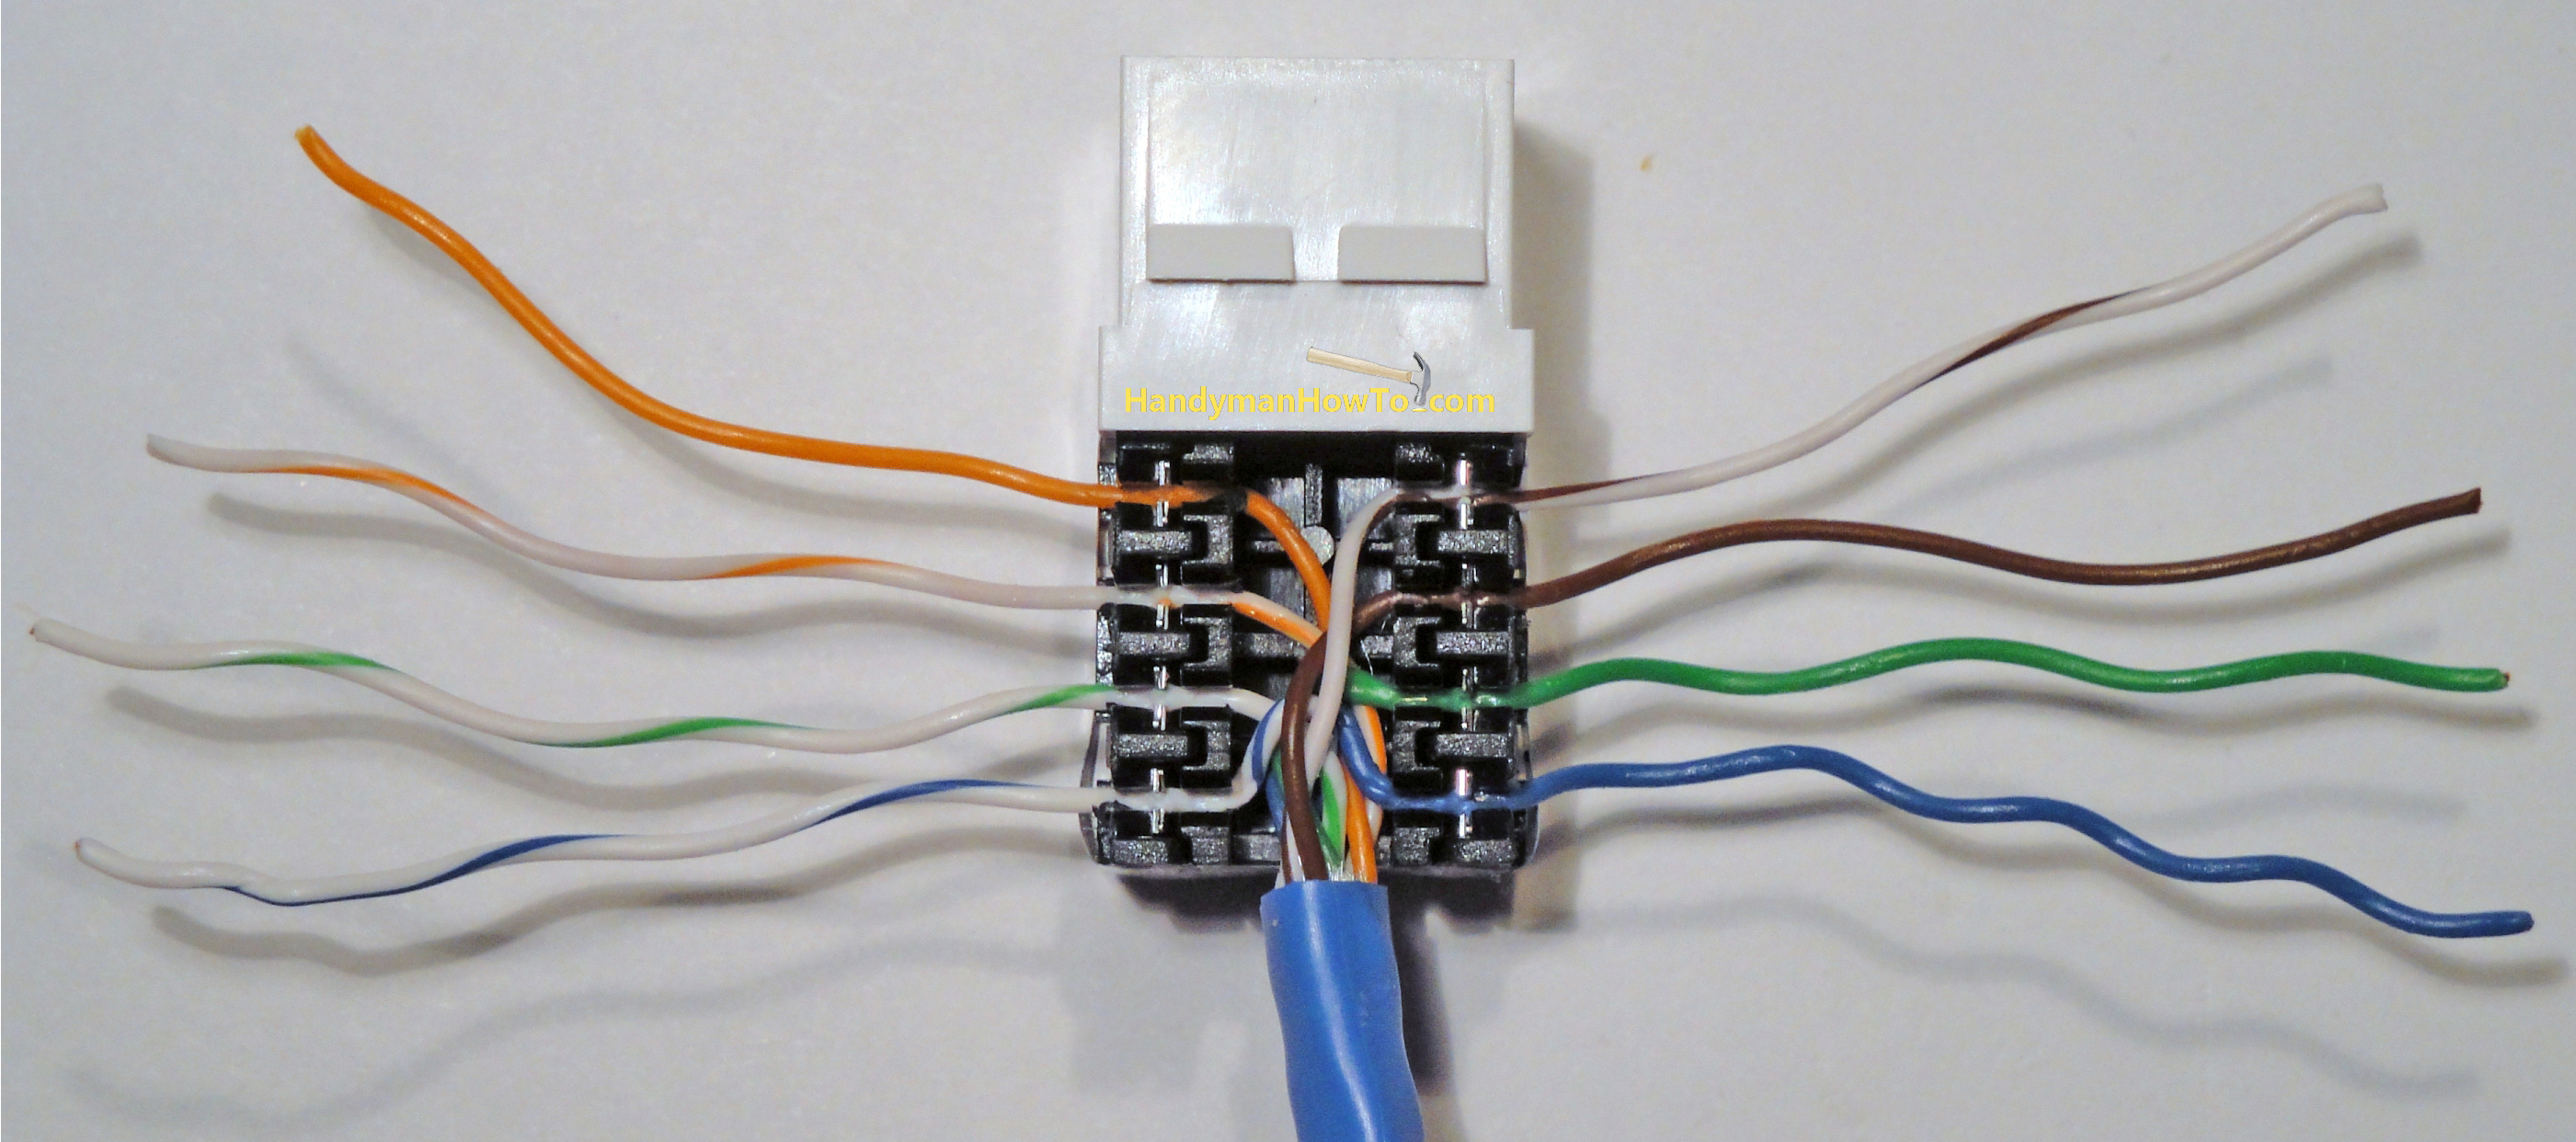 ce tech cat5e jack wiring diagram Download-Ethernet Wall socket Wiring Diagram Unique Amazing Dsl Phone Jack Wiring Diagram Contemporary the Best 3-r